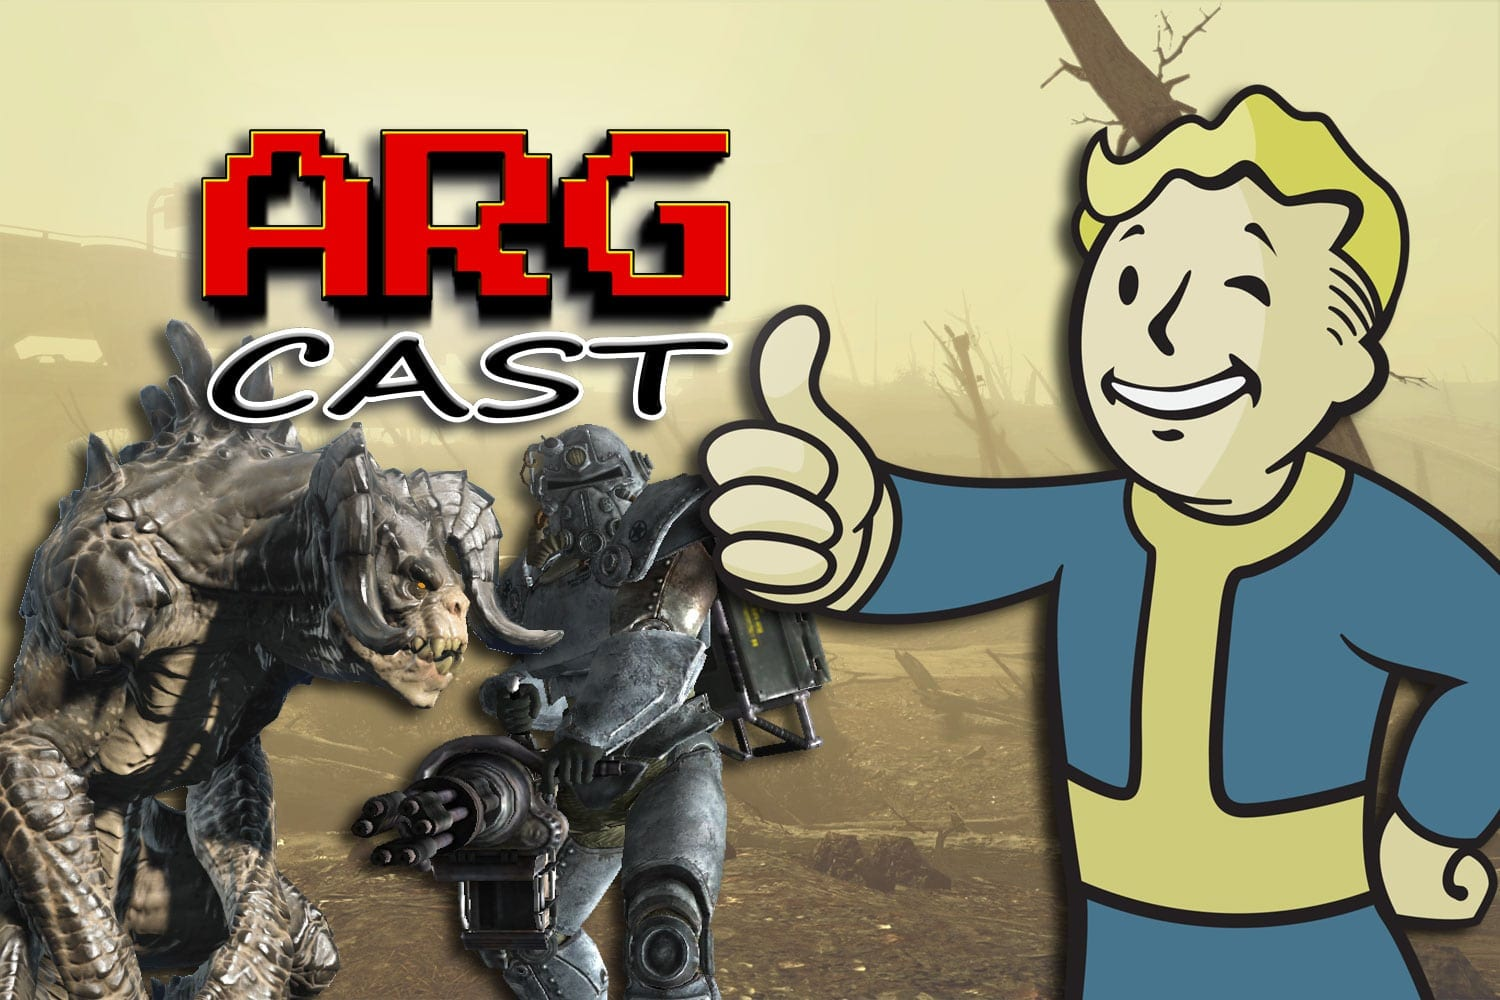 ARGcast #122: Exploring the Fallout Franchise with Taylor Lyles